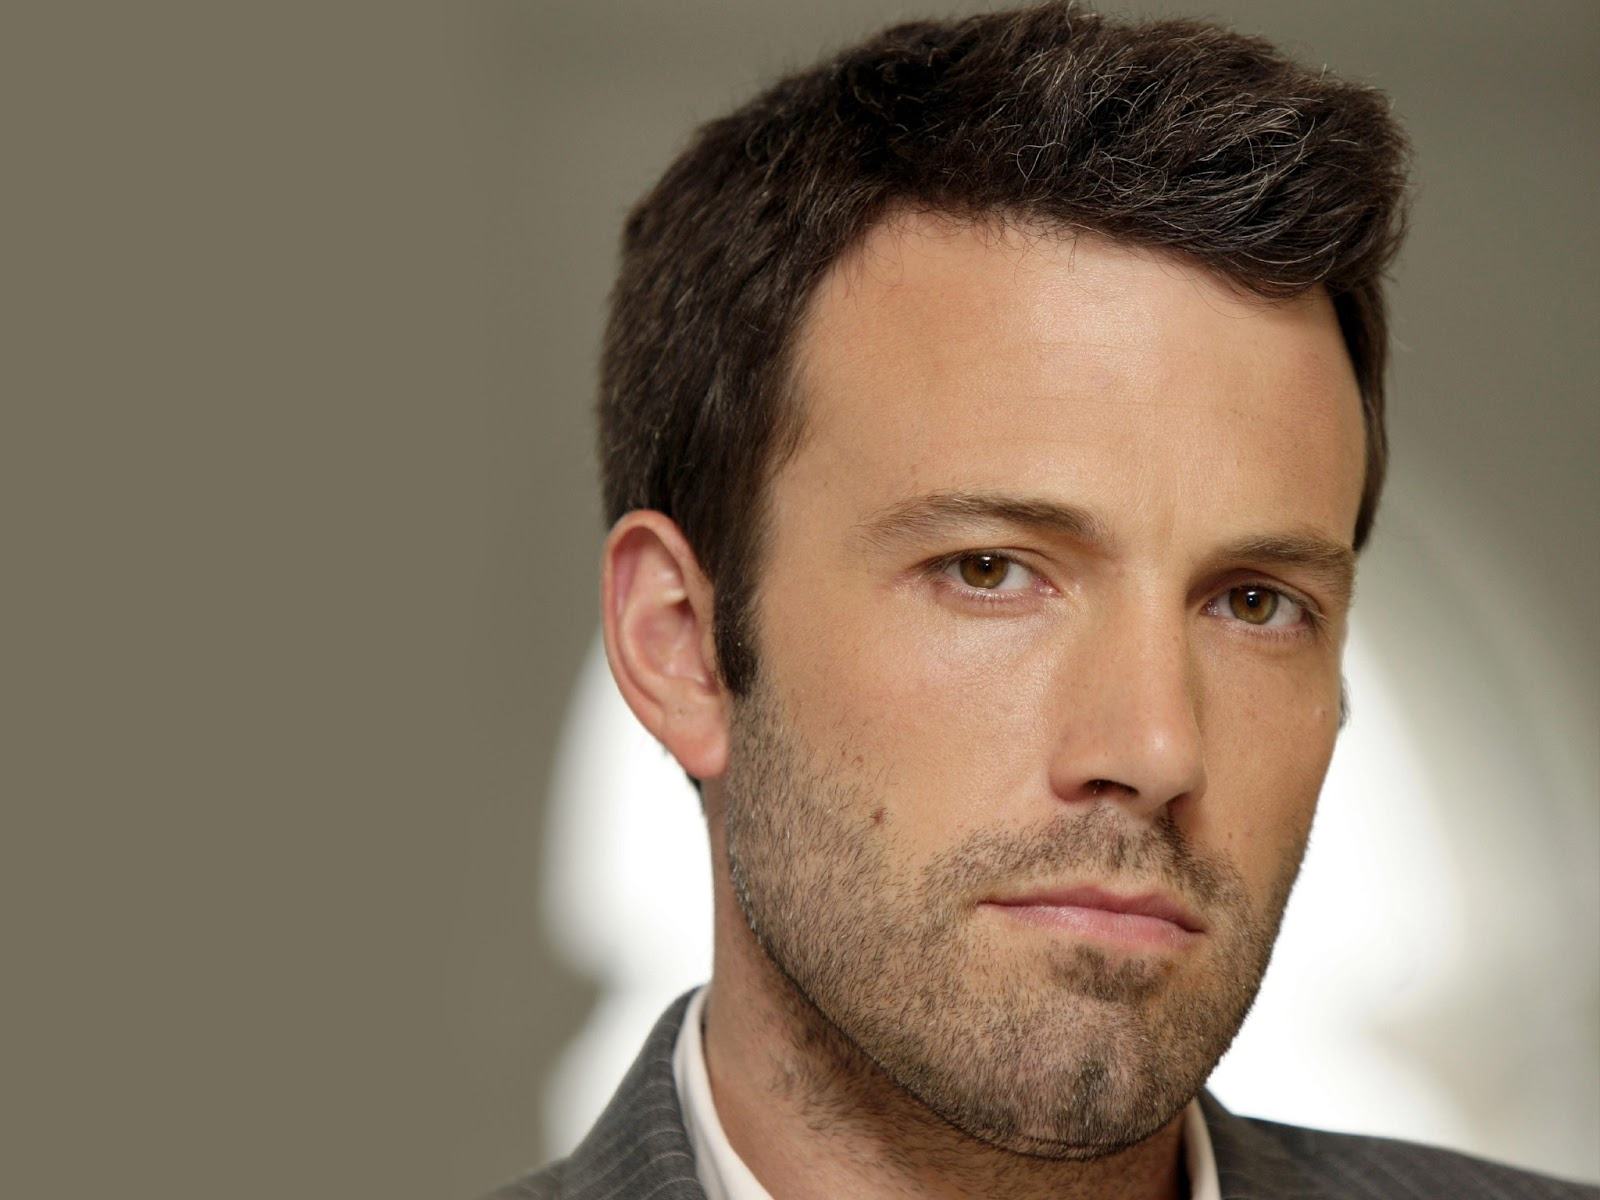 Ben Affleck portrait Linda Hogan Brooke And Linda Hogan Stand Out In Bright Colors And Bare